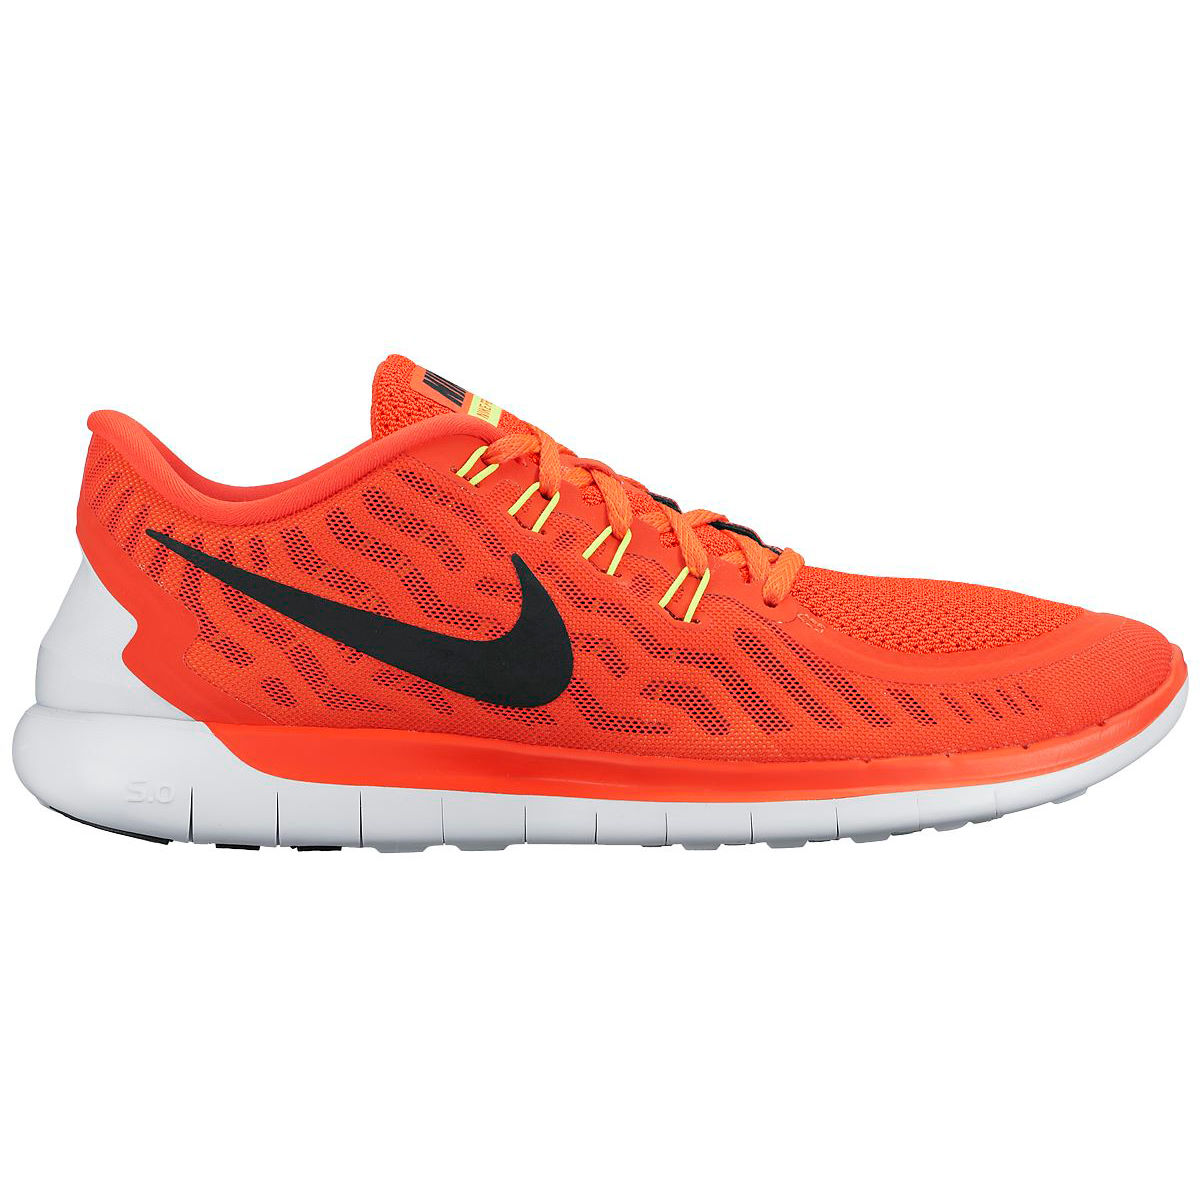 Nike Free Orange Shoes